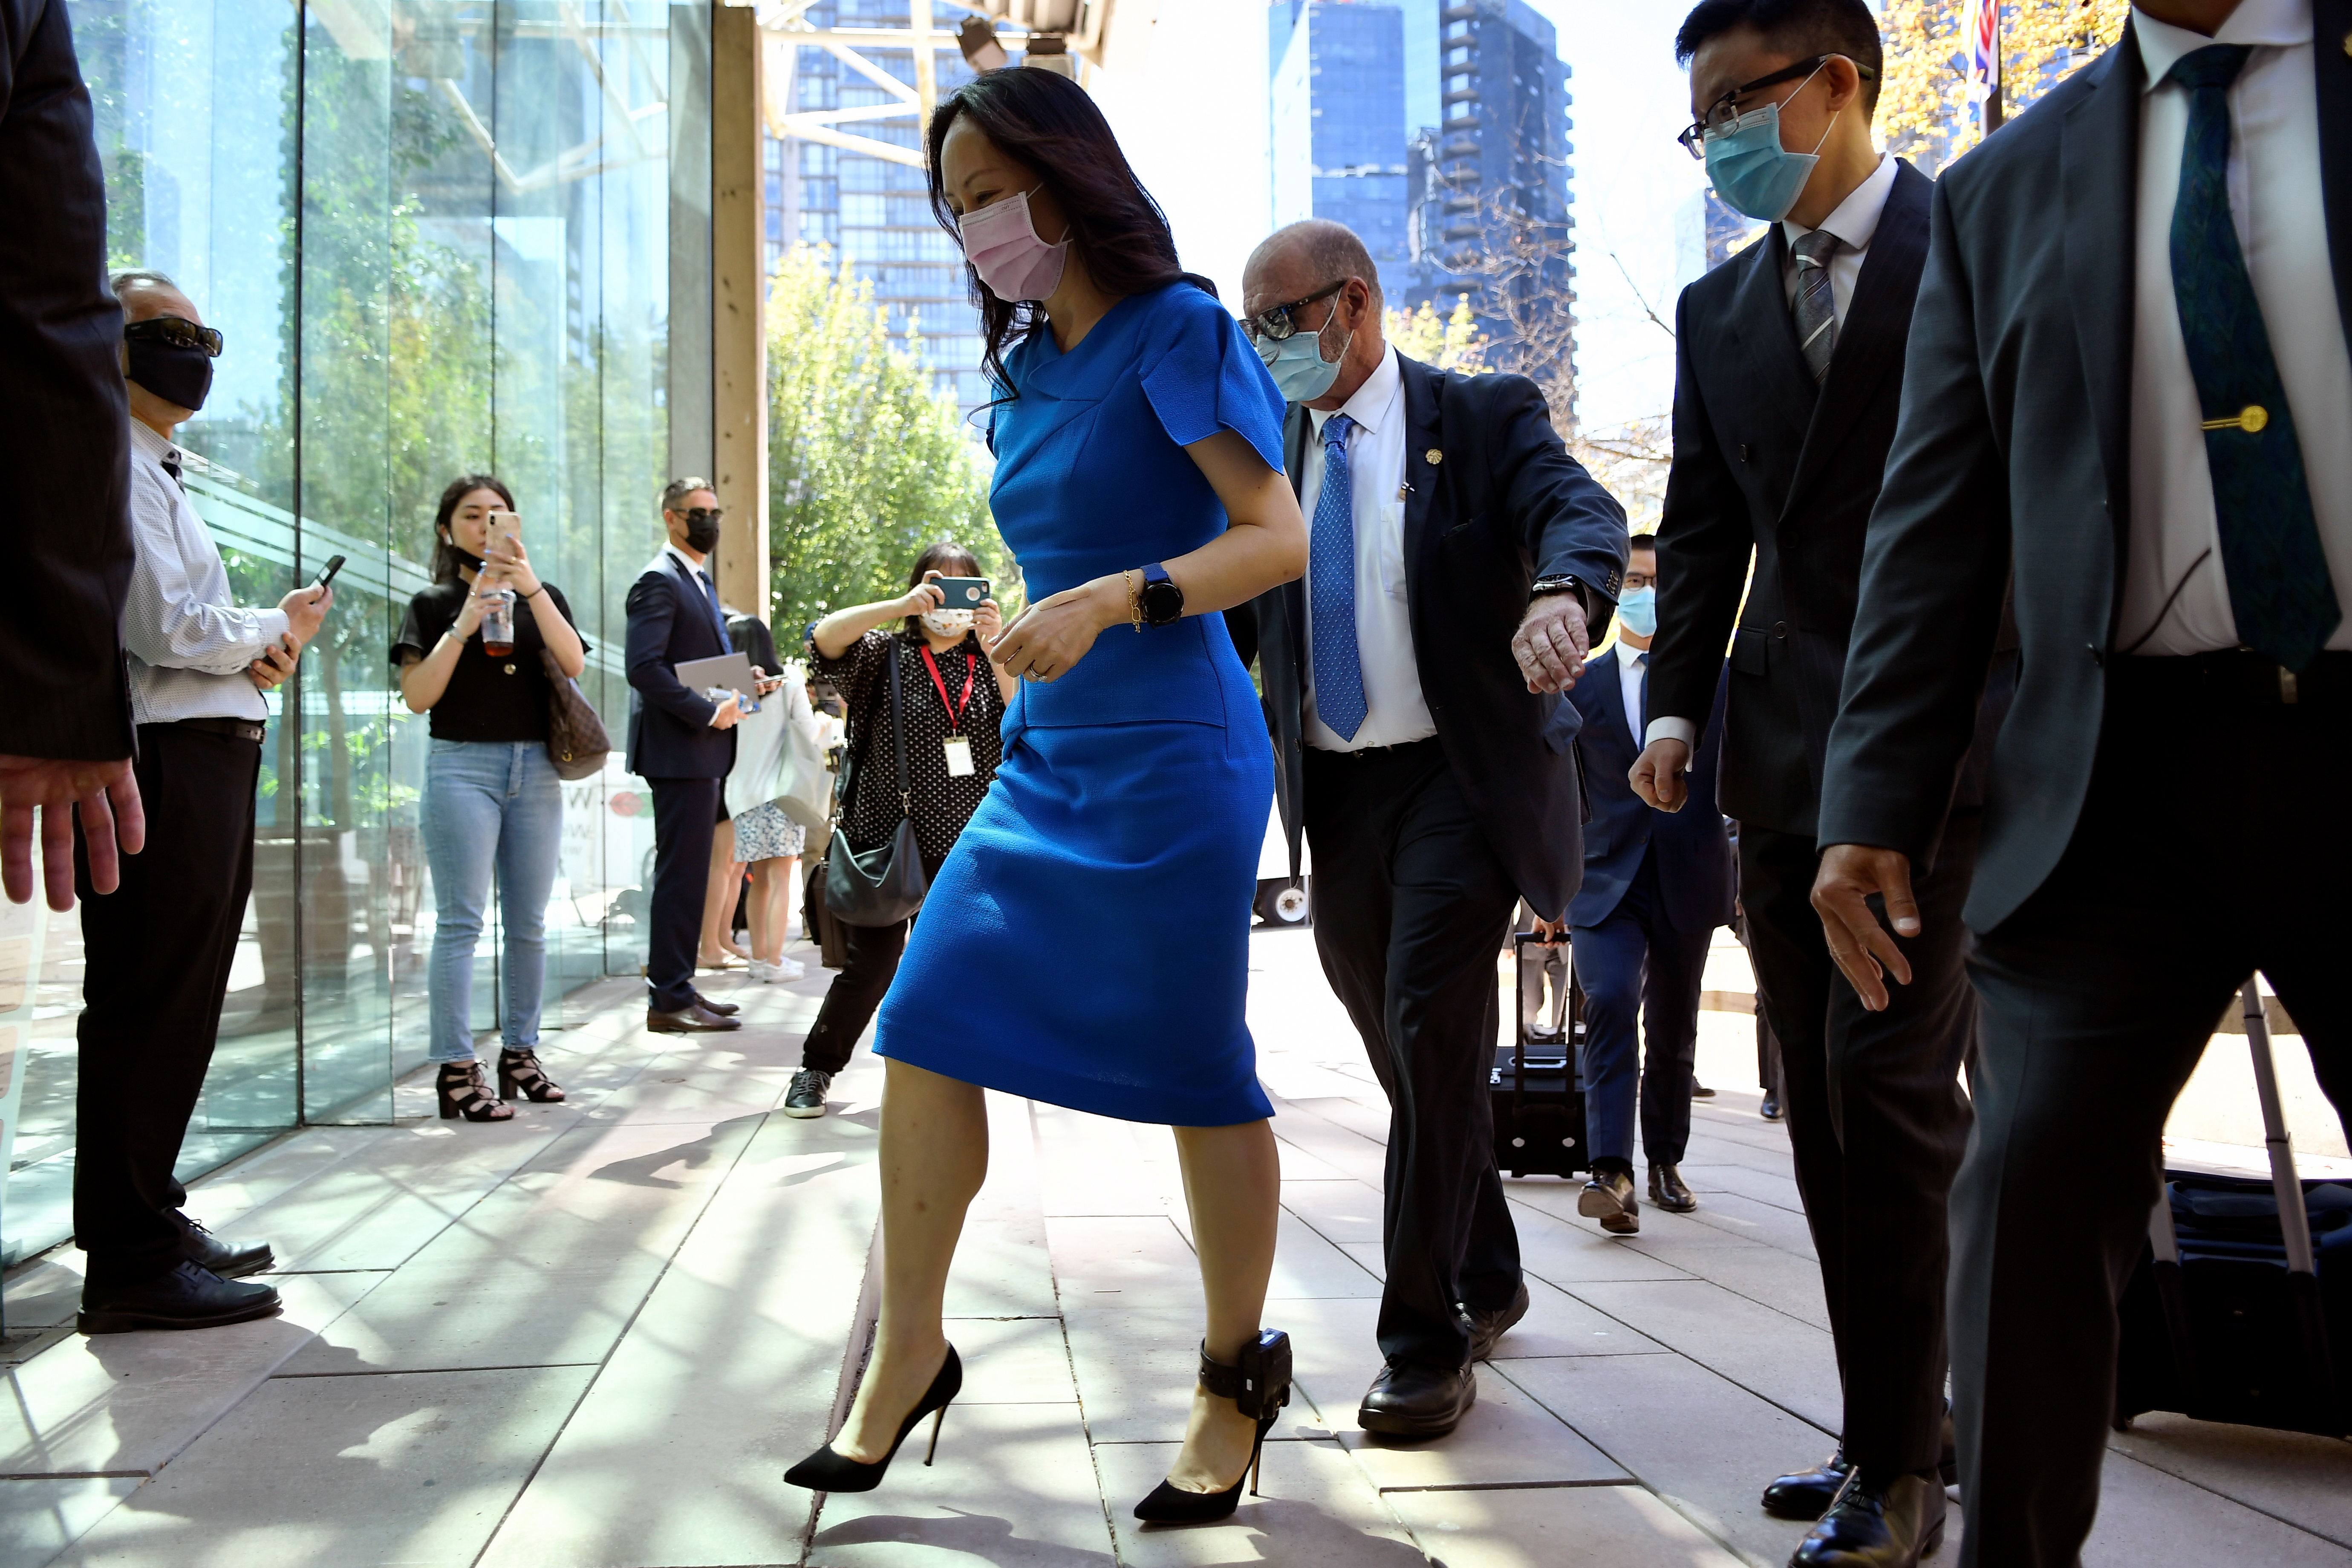 Huawei Technologies Chief Financial Officer Meng Wanzhou returns to court following a break in Vancouver, British Columbia, Canada, August 4, 2021. REUTERS/Jennifer Gauthier